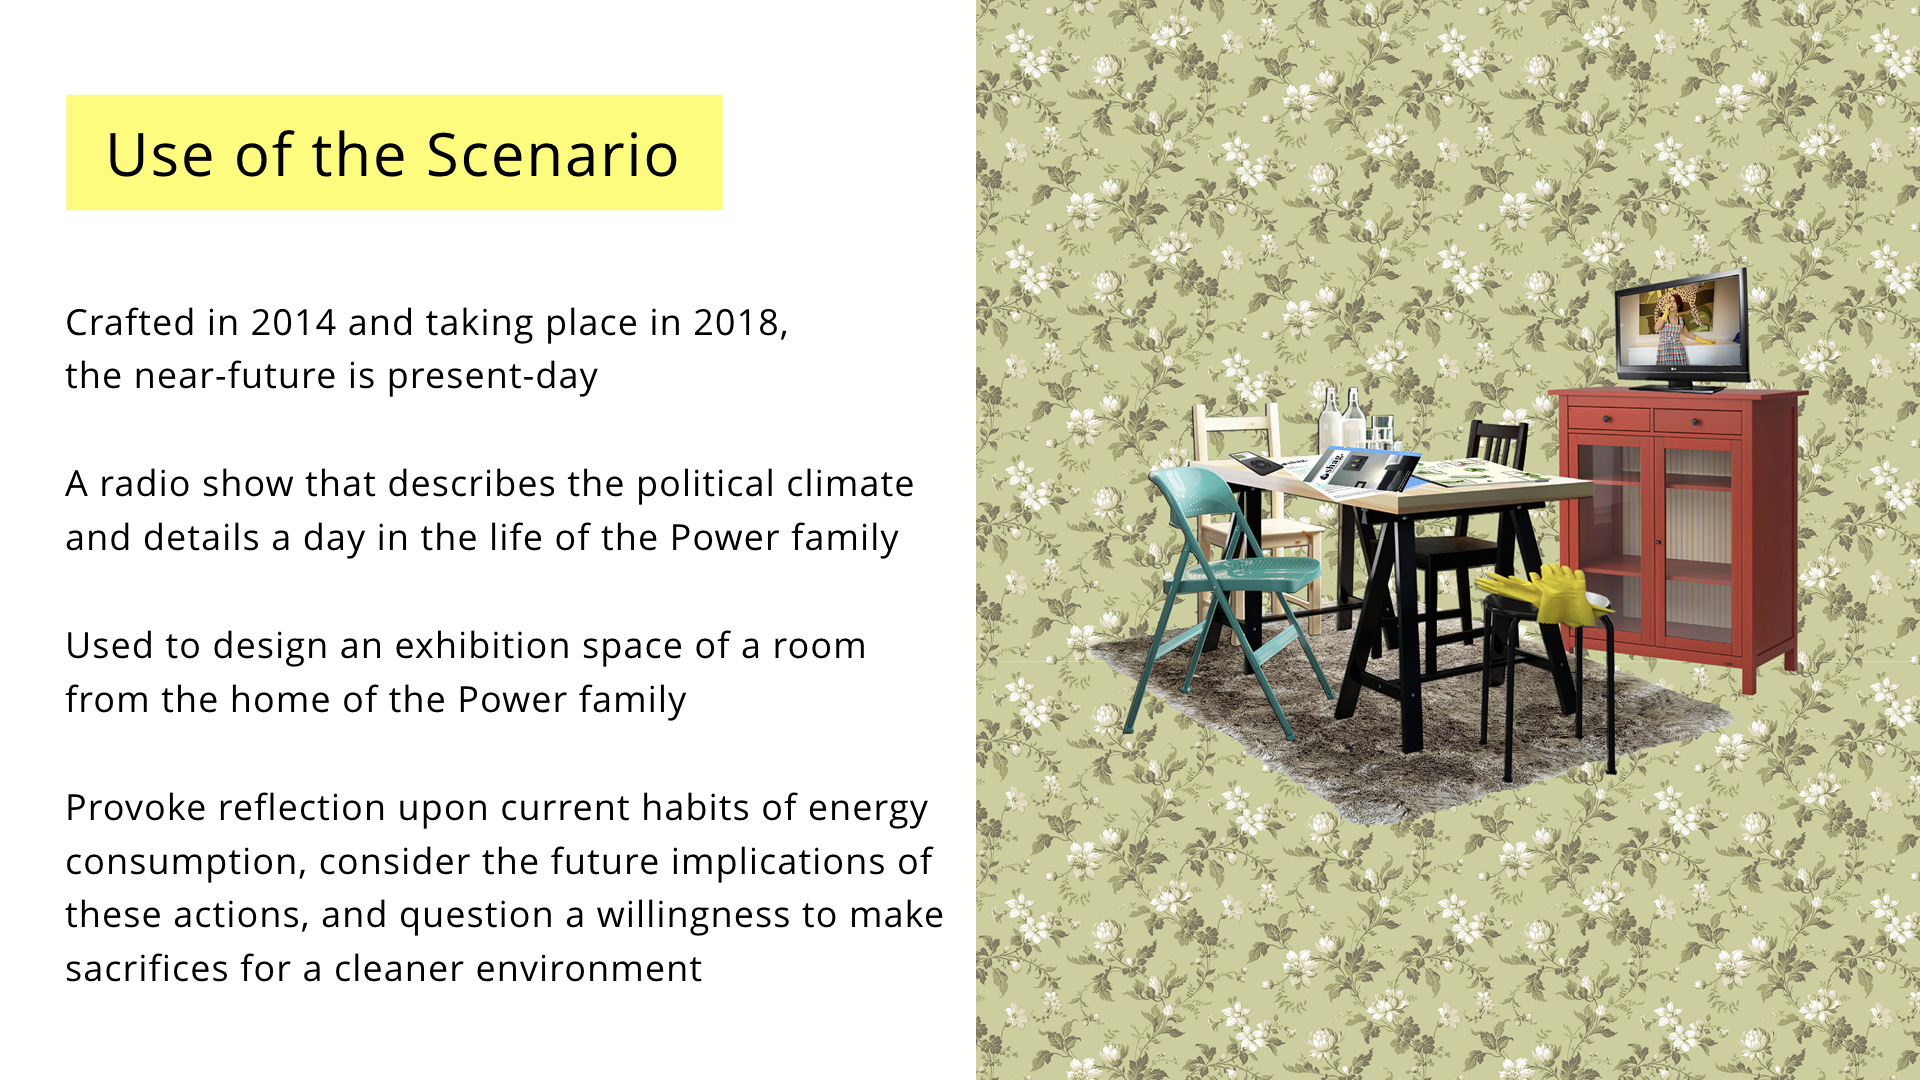 NordiCHI future scenarios presentation: Use of the scenario